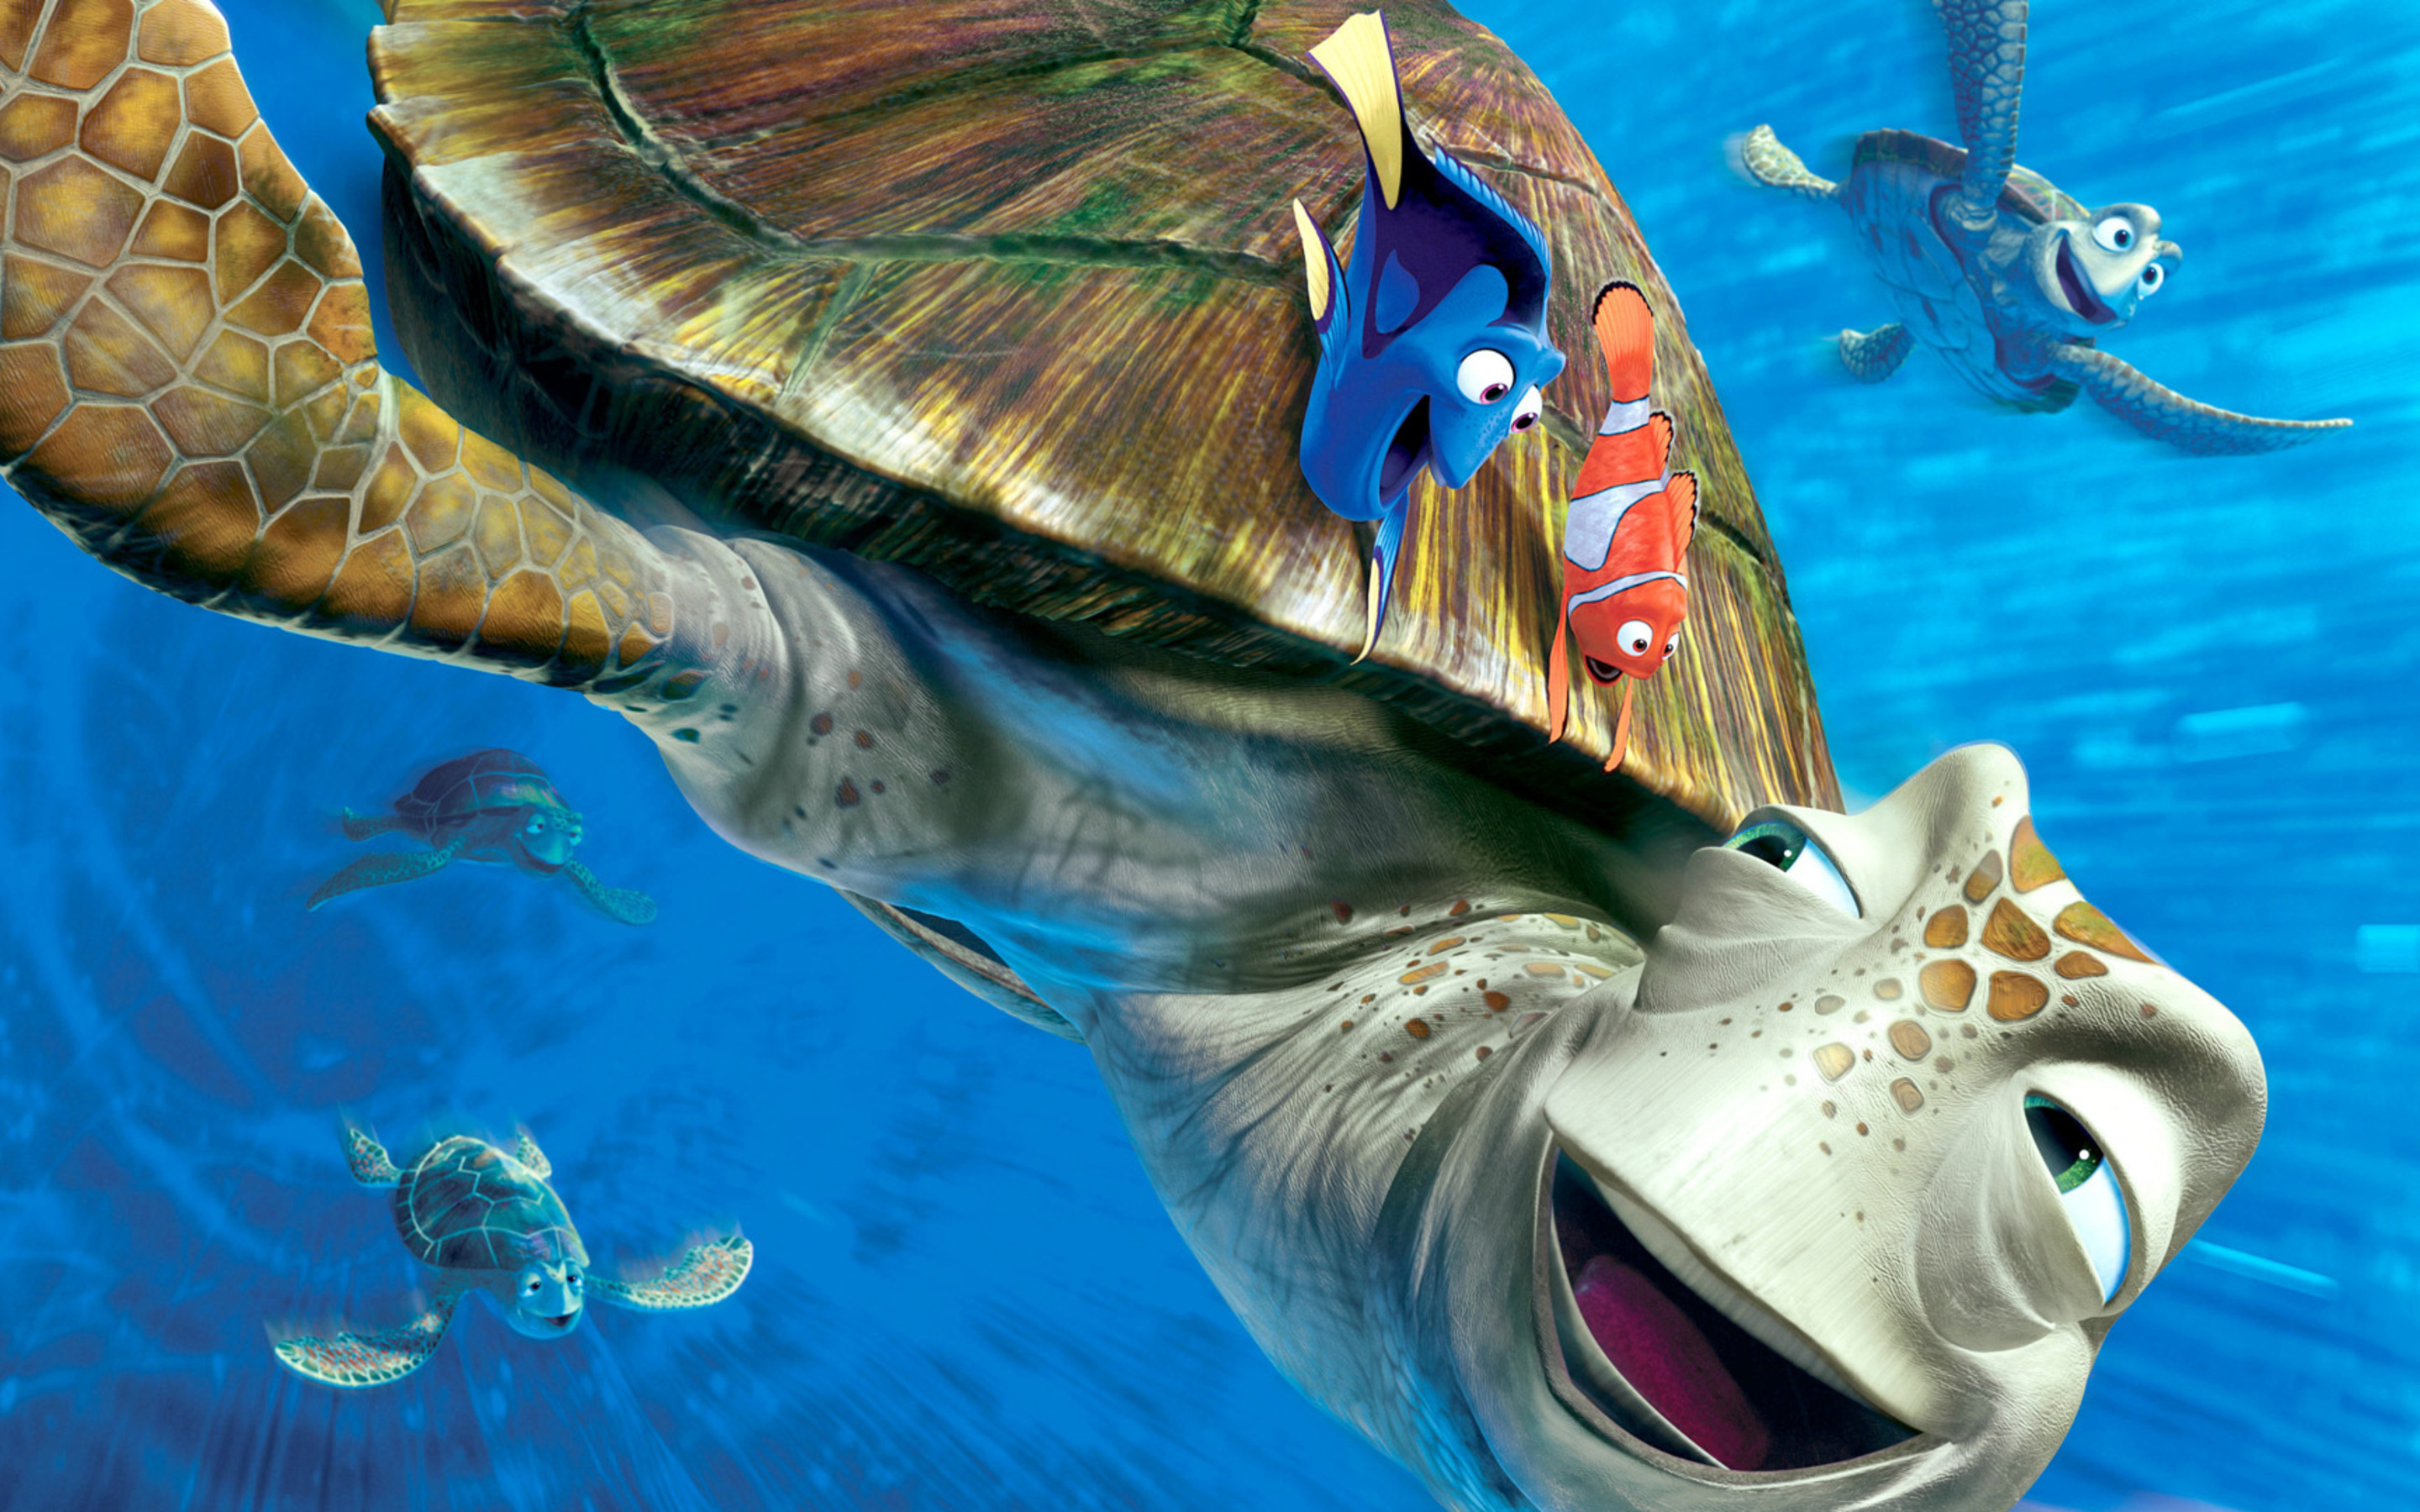 2880x1800 Finding Nemo Dinsey Movie Macbook Pro Retina HD 4k Wallpapers Images Backgrounds Photos And Pictures